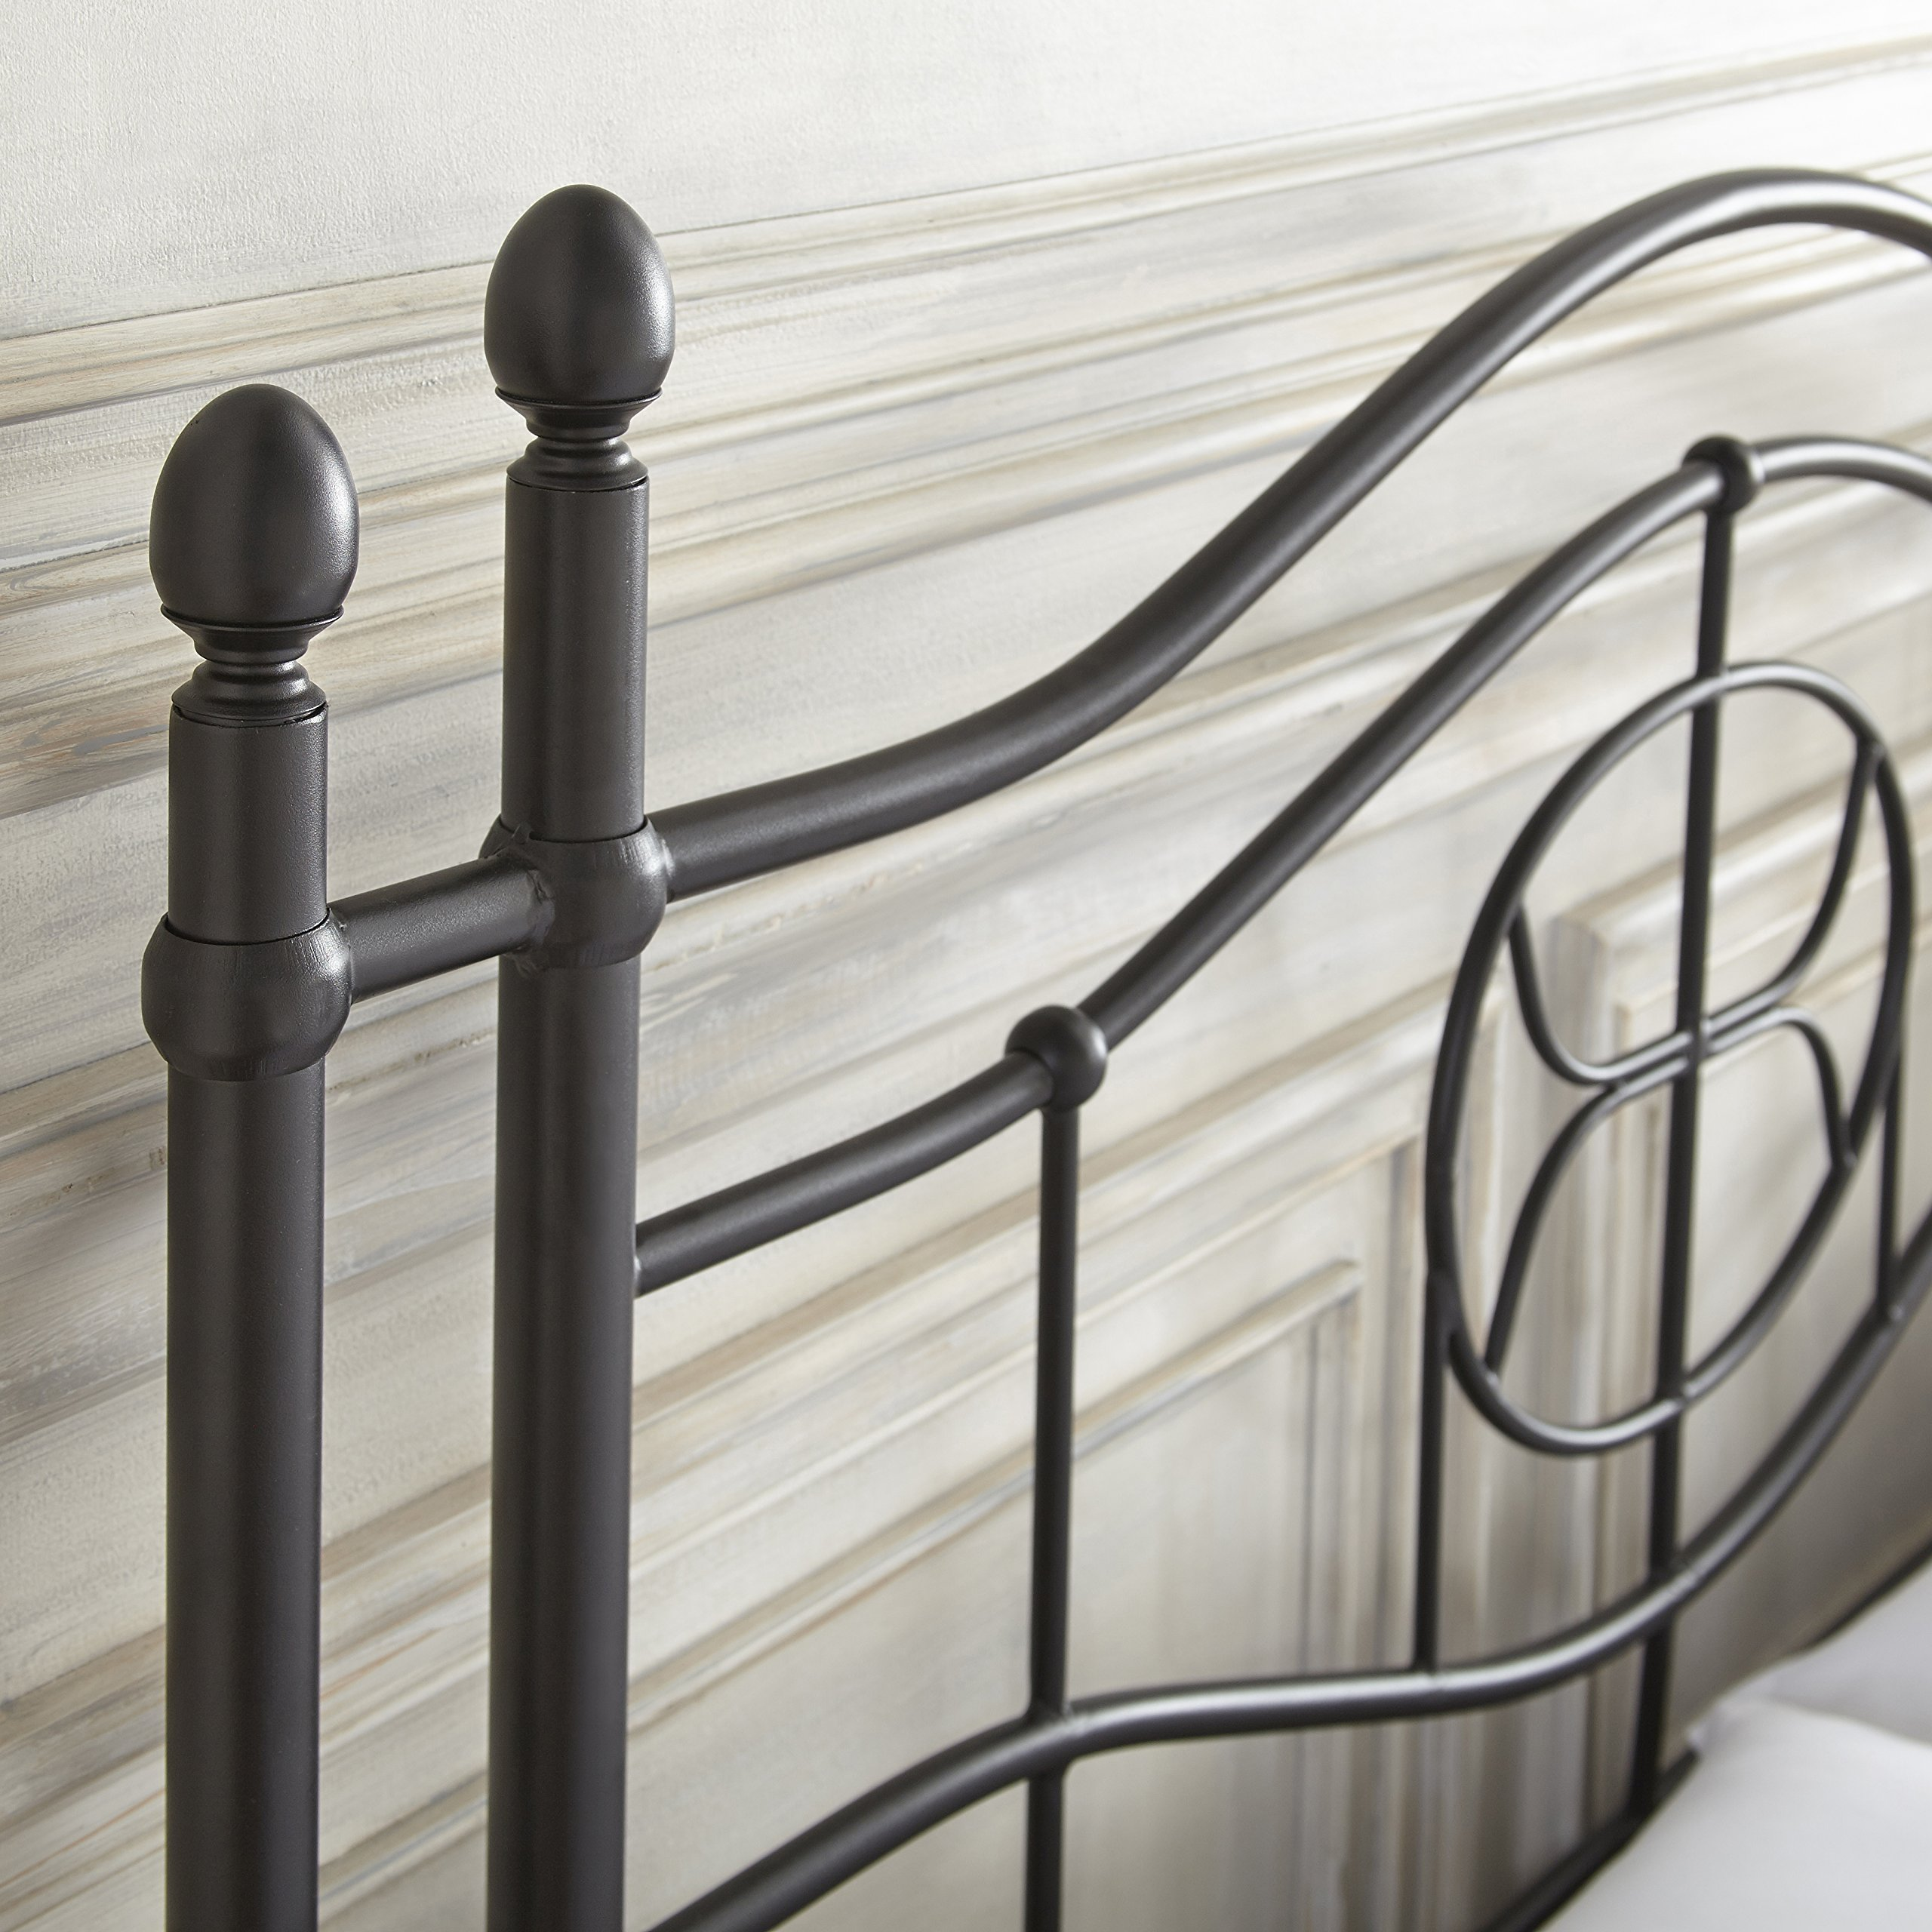 Flex Form Evie Metal Platform Bed Frame / Mattress Foundation with Headboard and Footboard, Queen by Flex Form (Image #3)